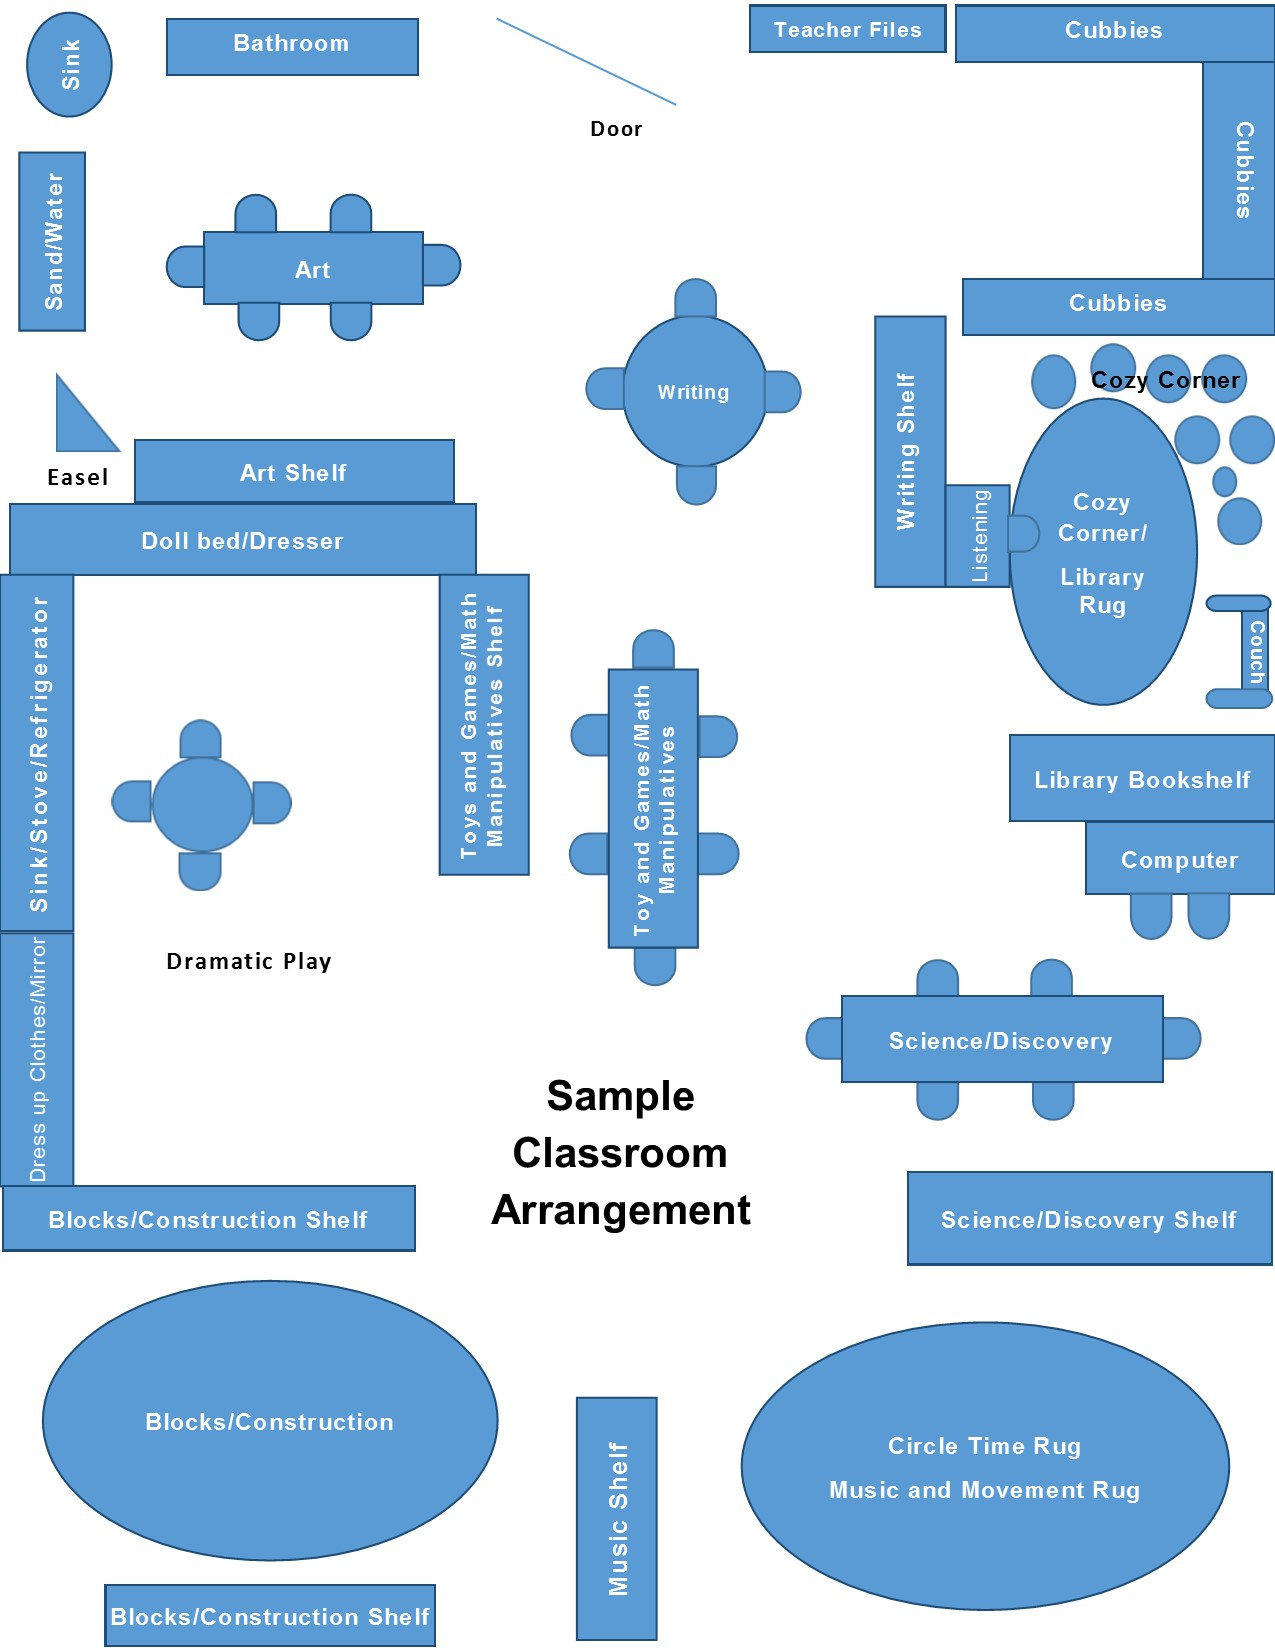 A sample of how a classroom can be arranged.